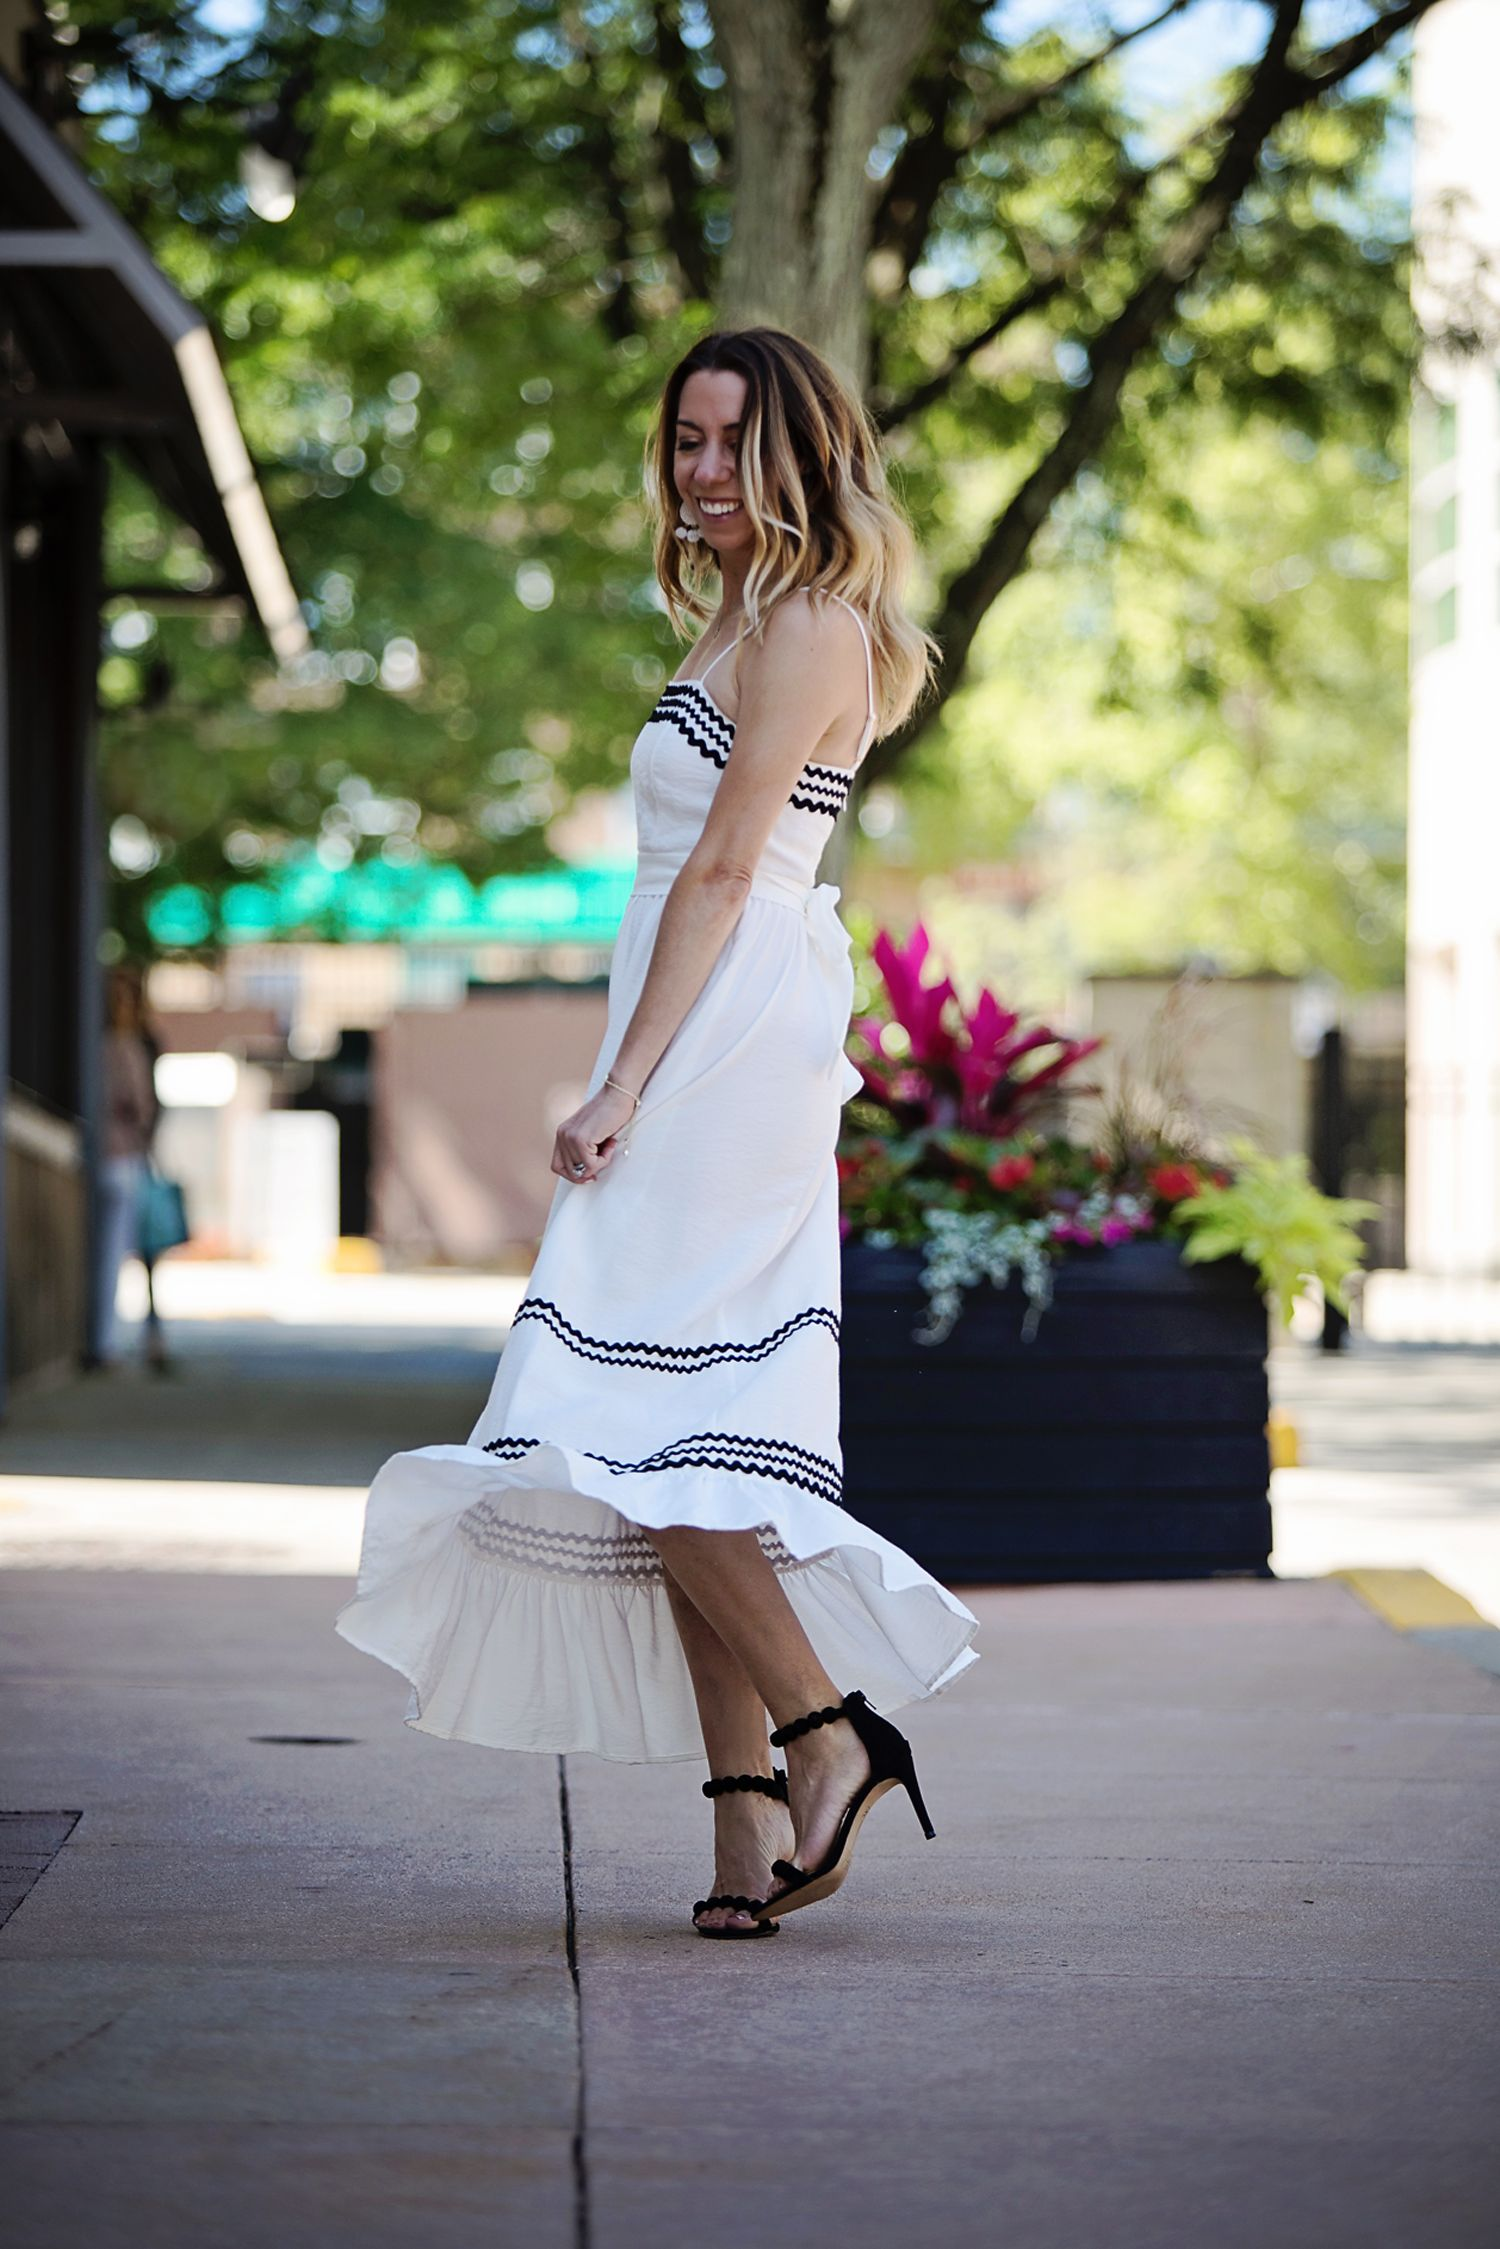 f8c987ab0ab The Motherchic wearing striped cece maxi dress